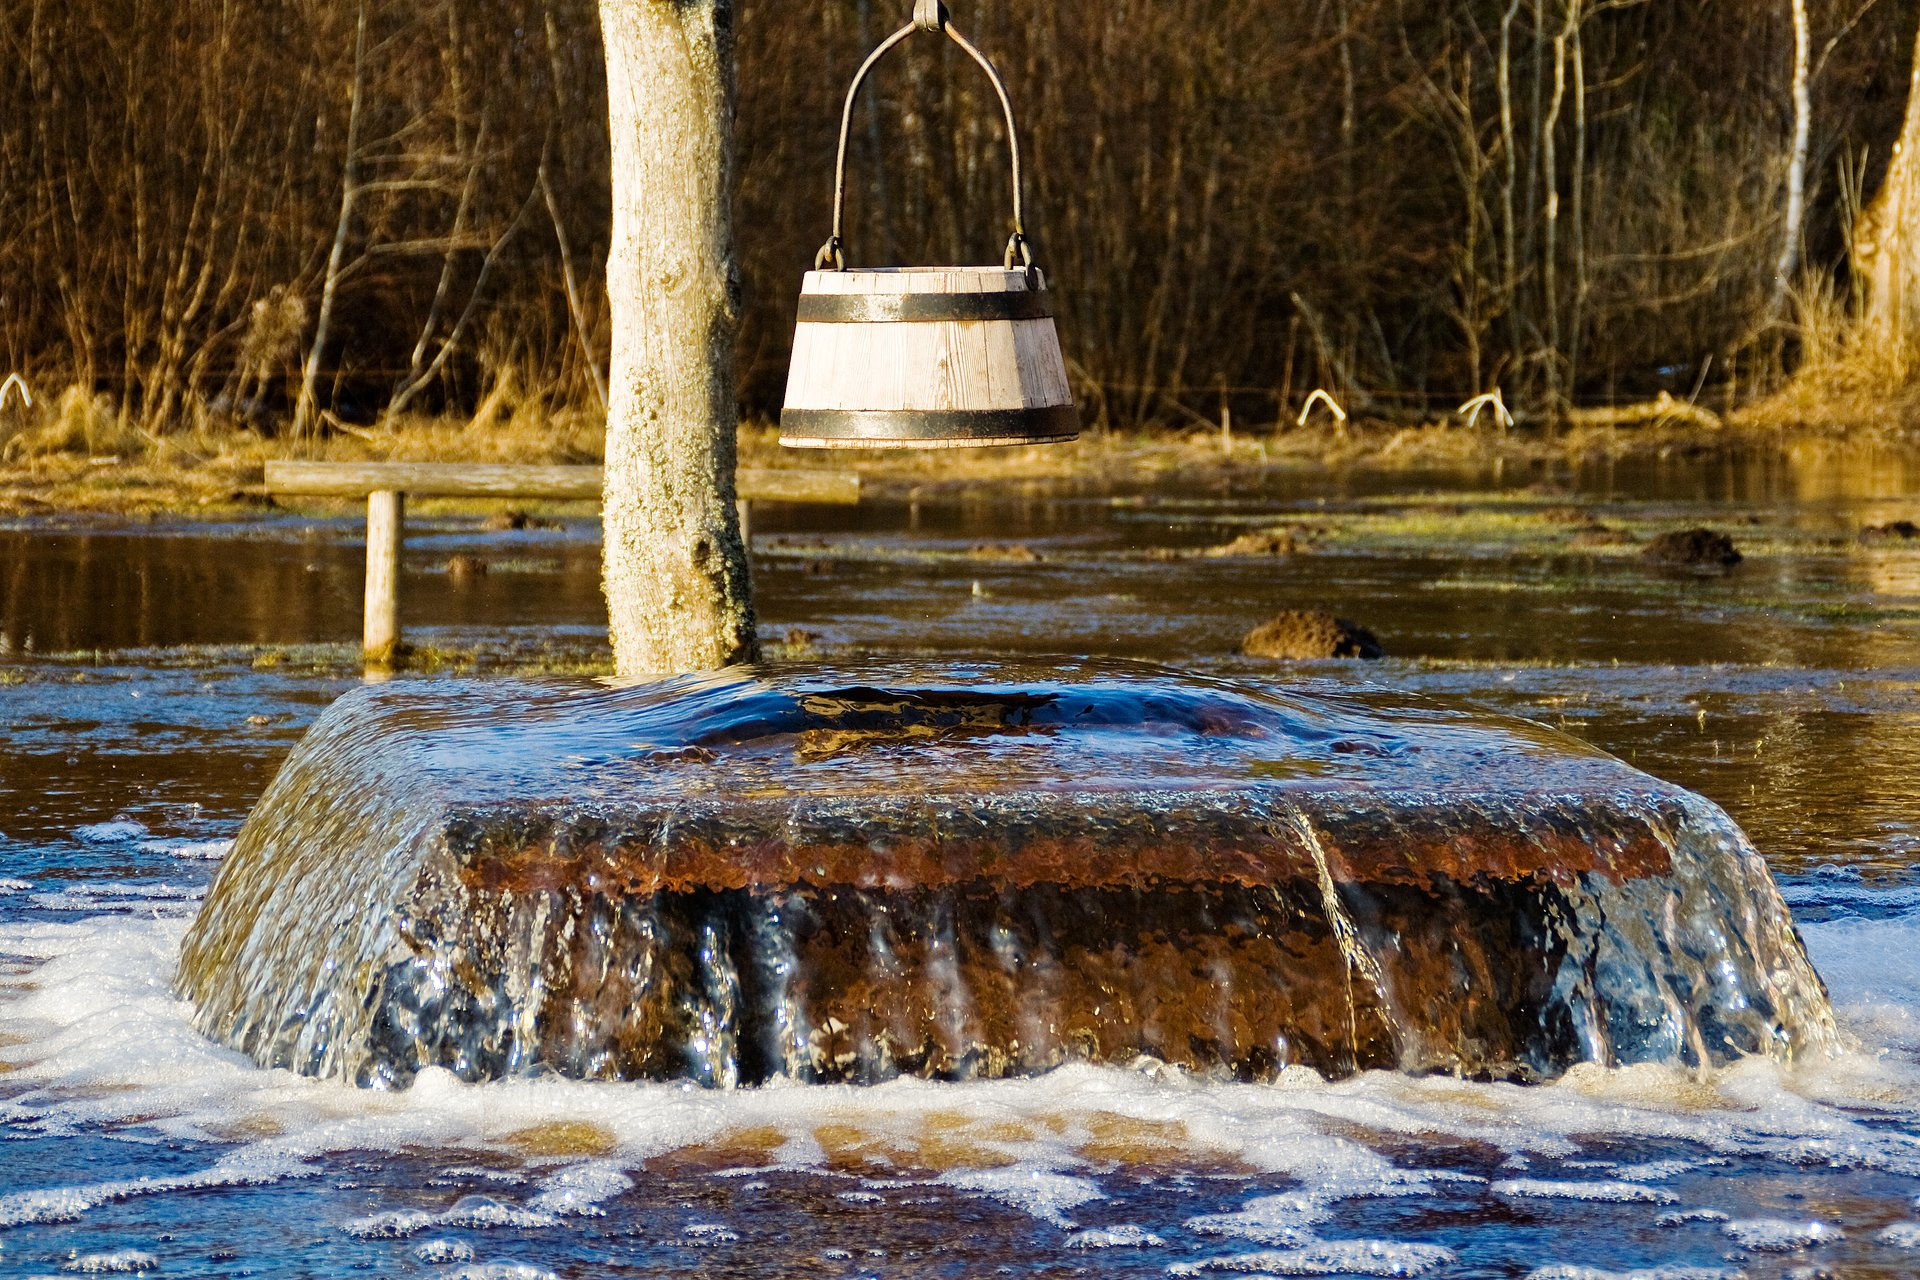 Tuhala Witch's Well Overflowing in Estonia 2020 - Best Time